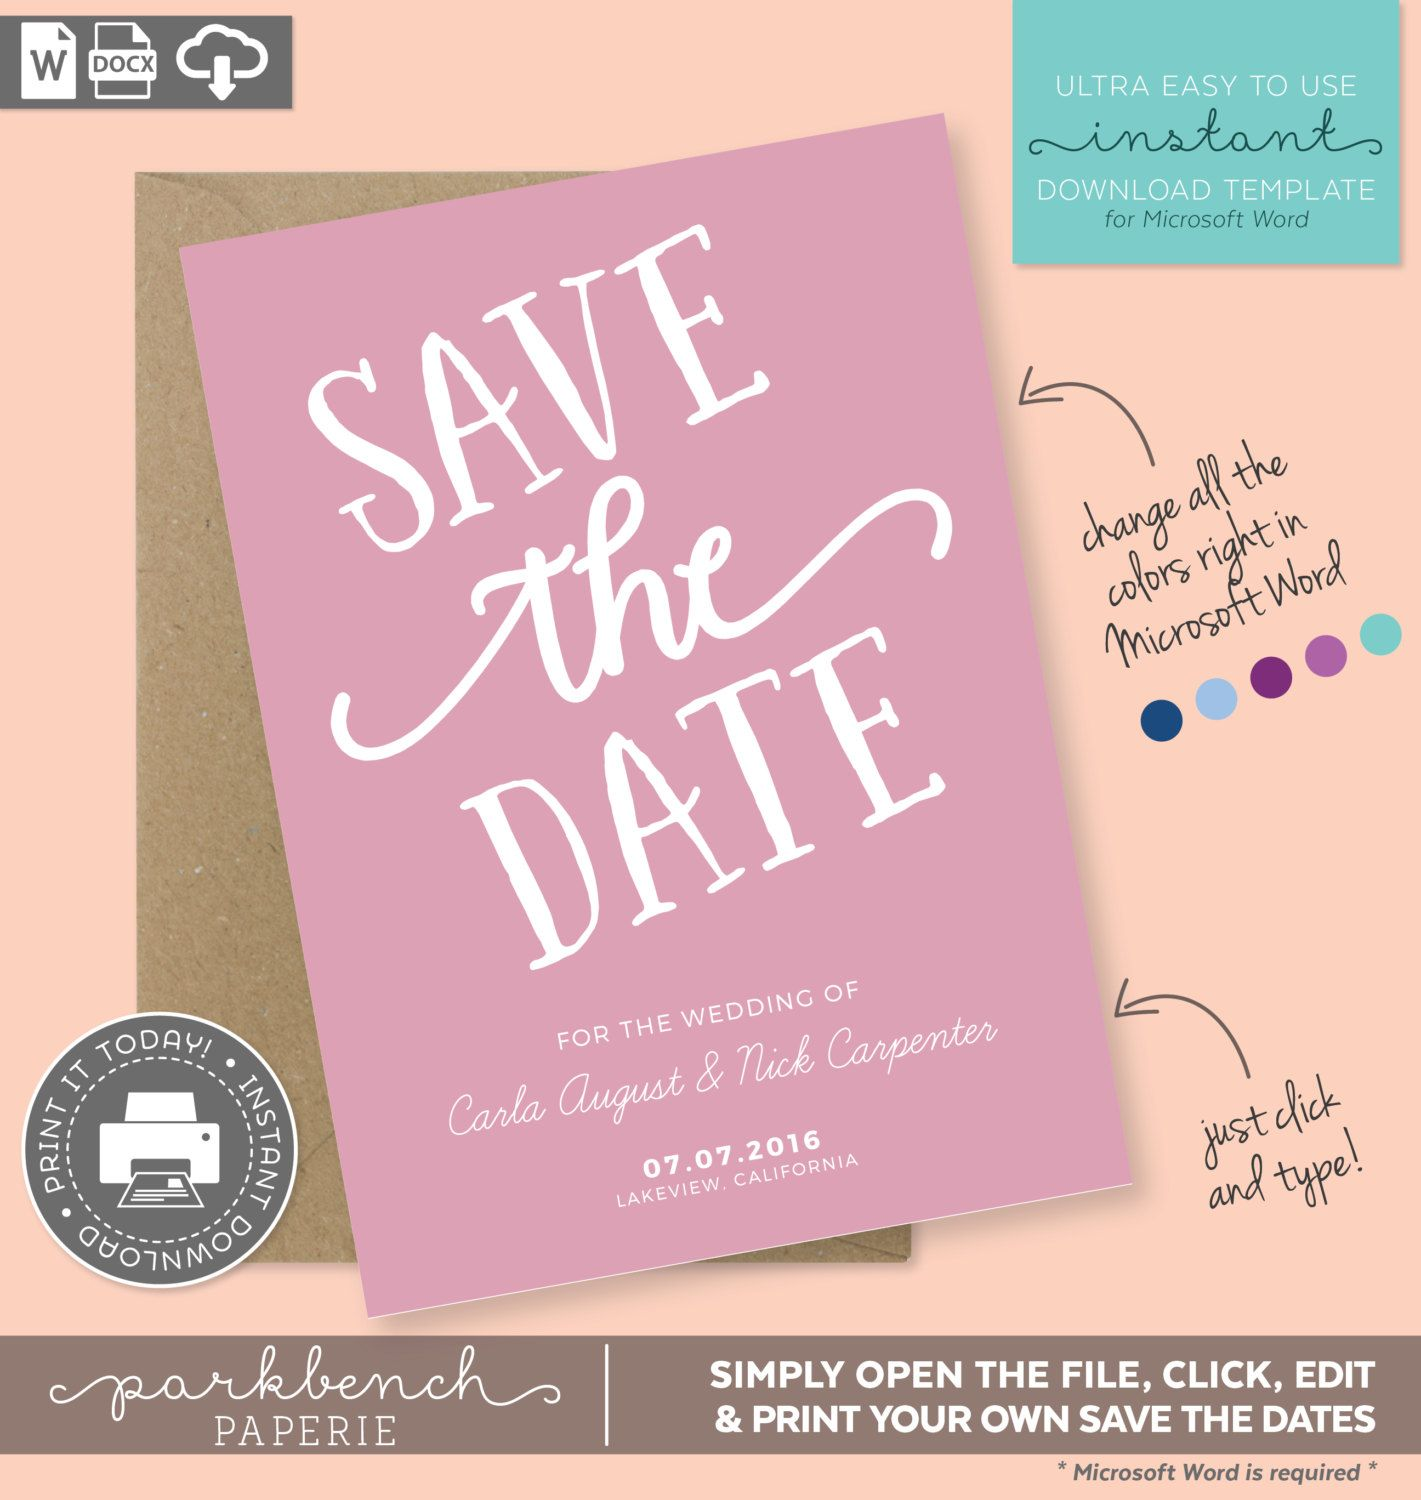 Save The Date Printable Template For Microsoft Word Carla